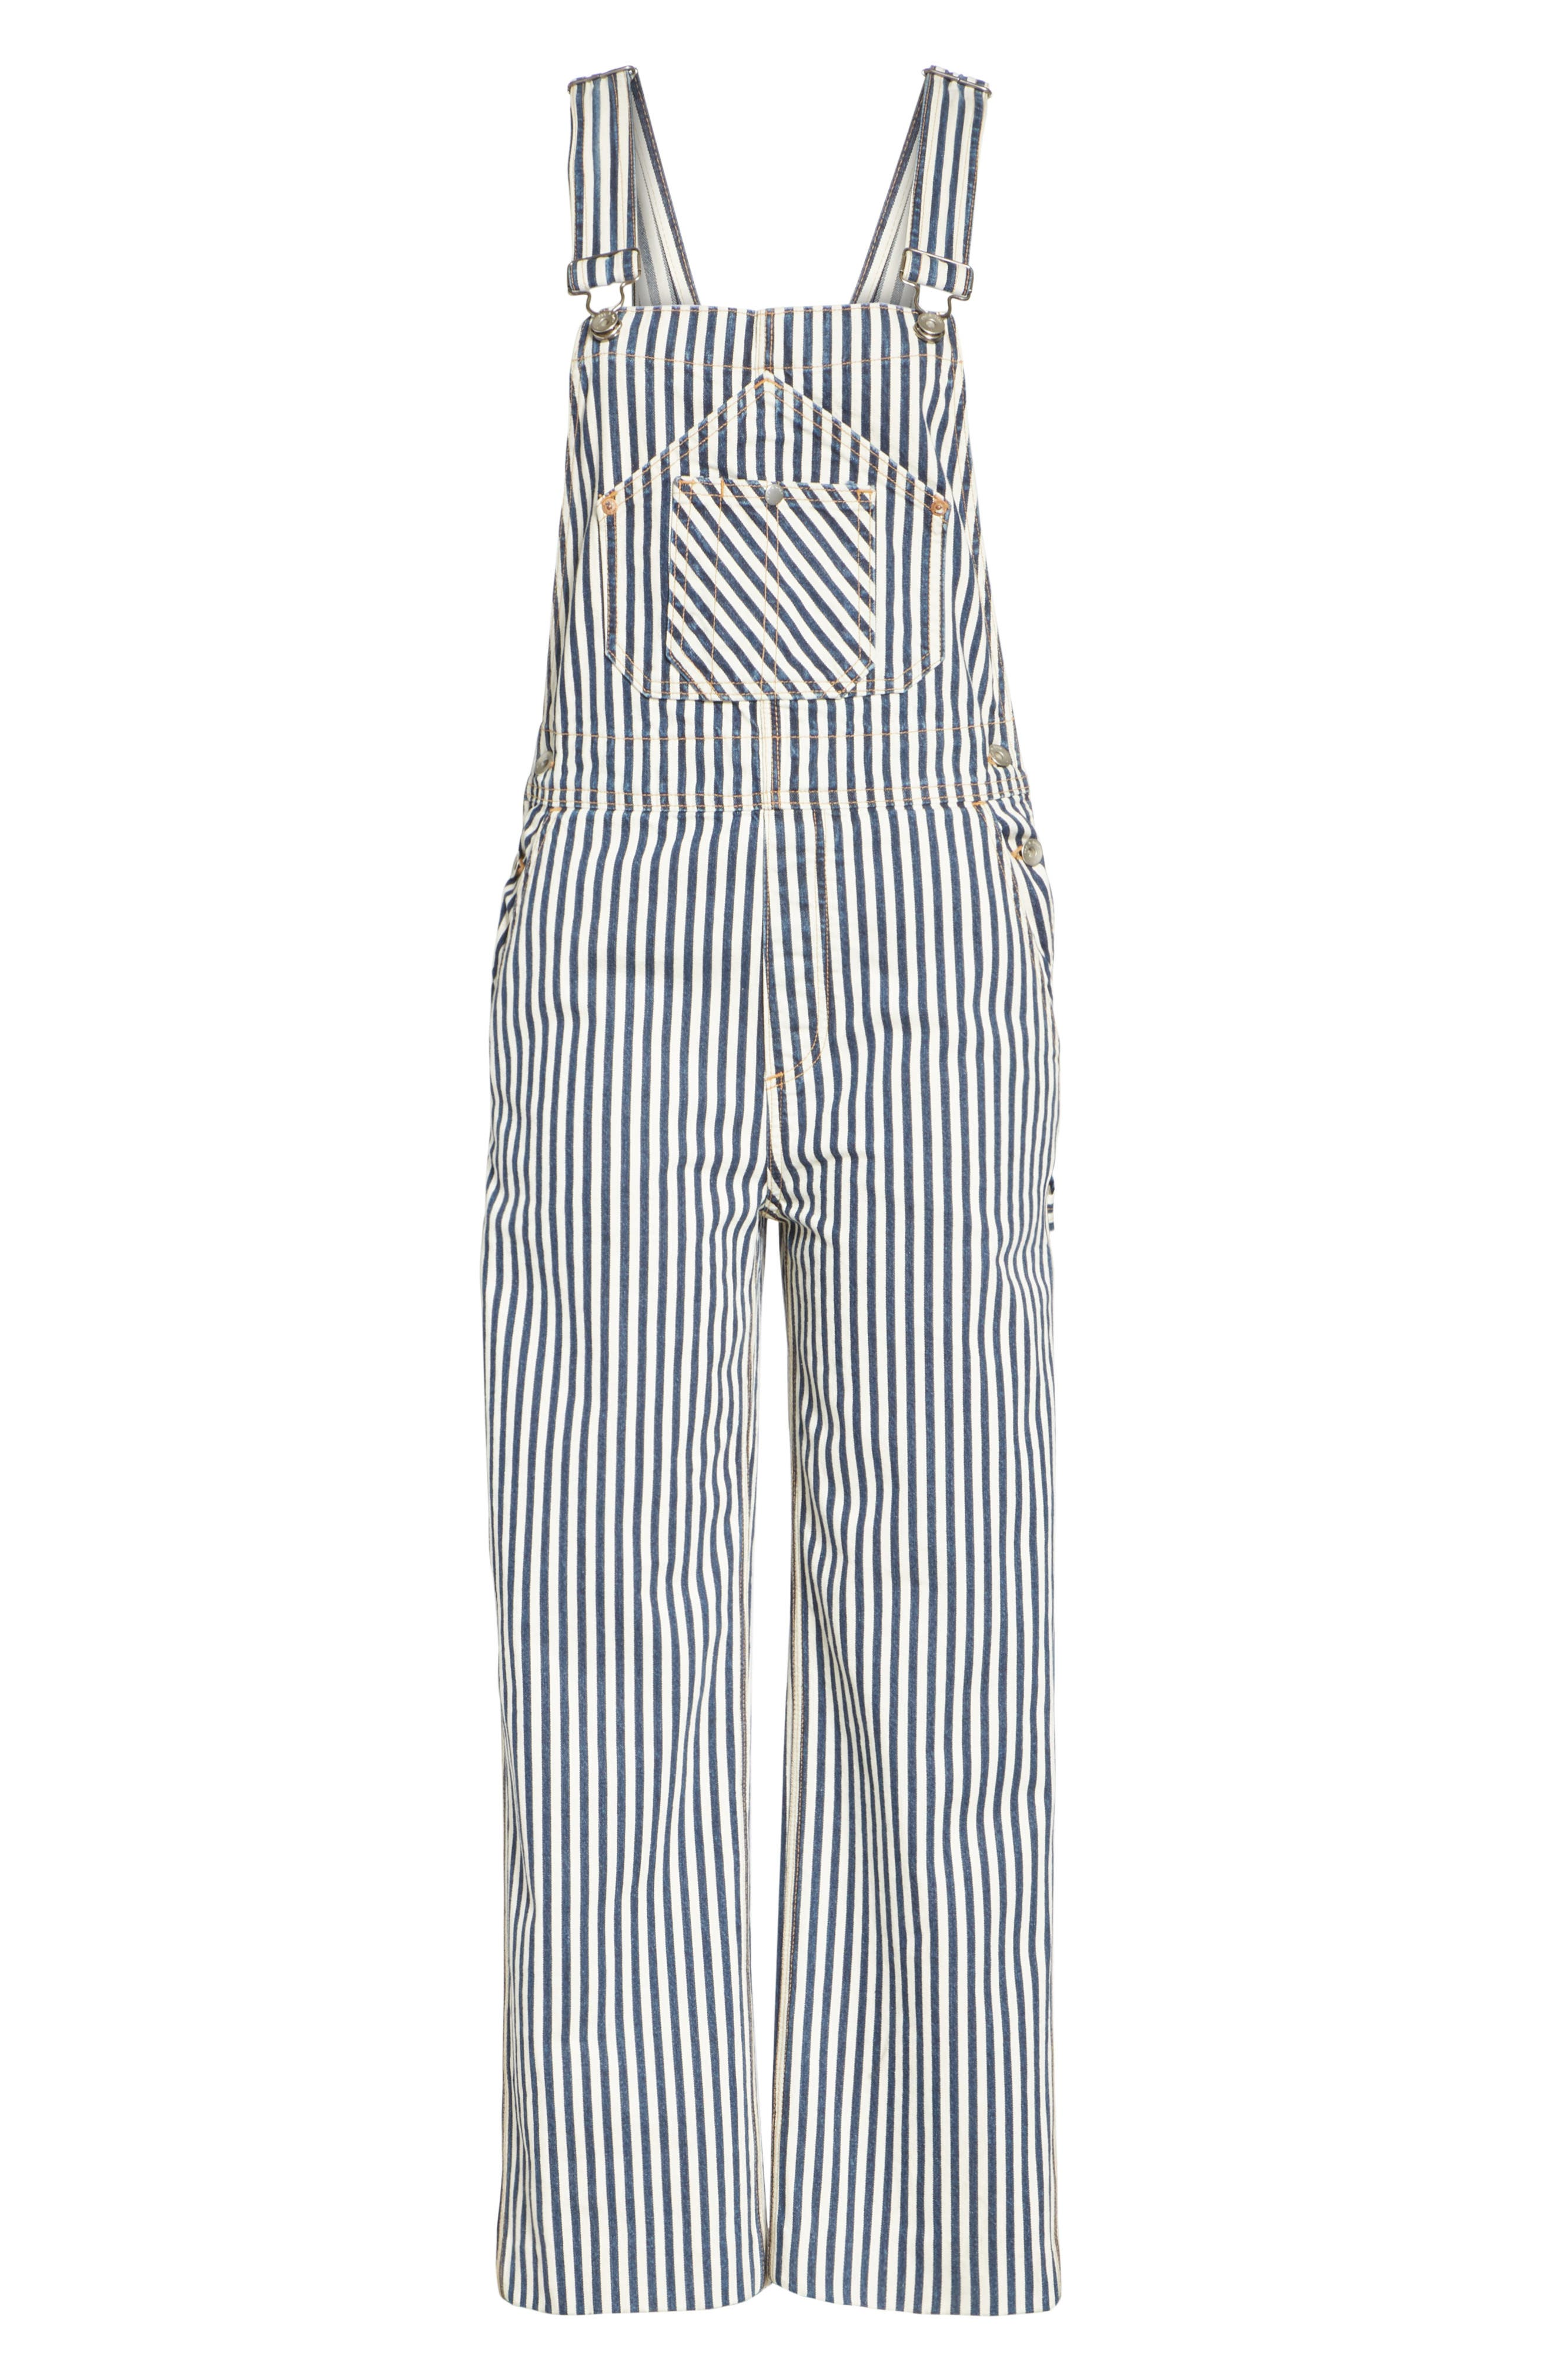 Patched Dungarees,                             Alternate thumbnail 6, color,                             Indigo Stripe